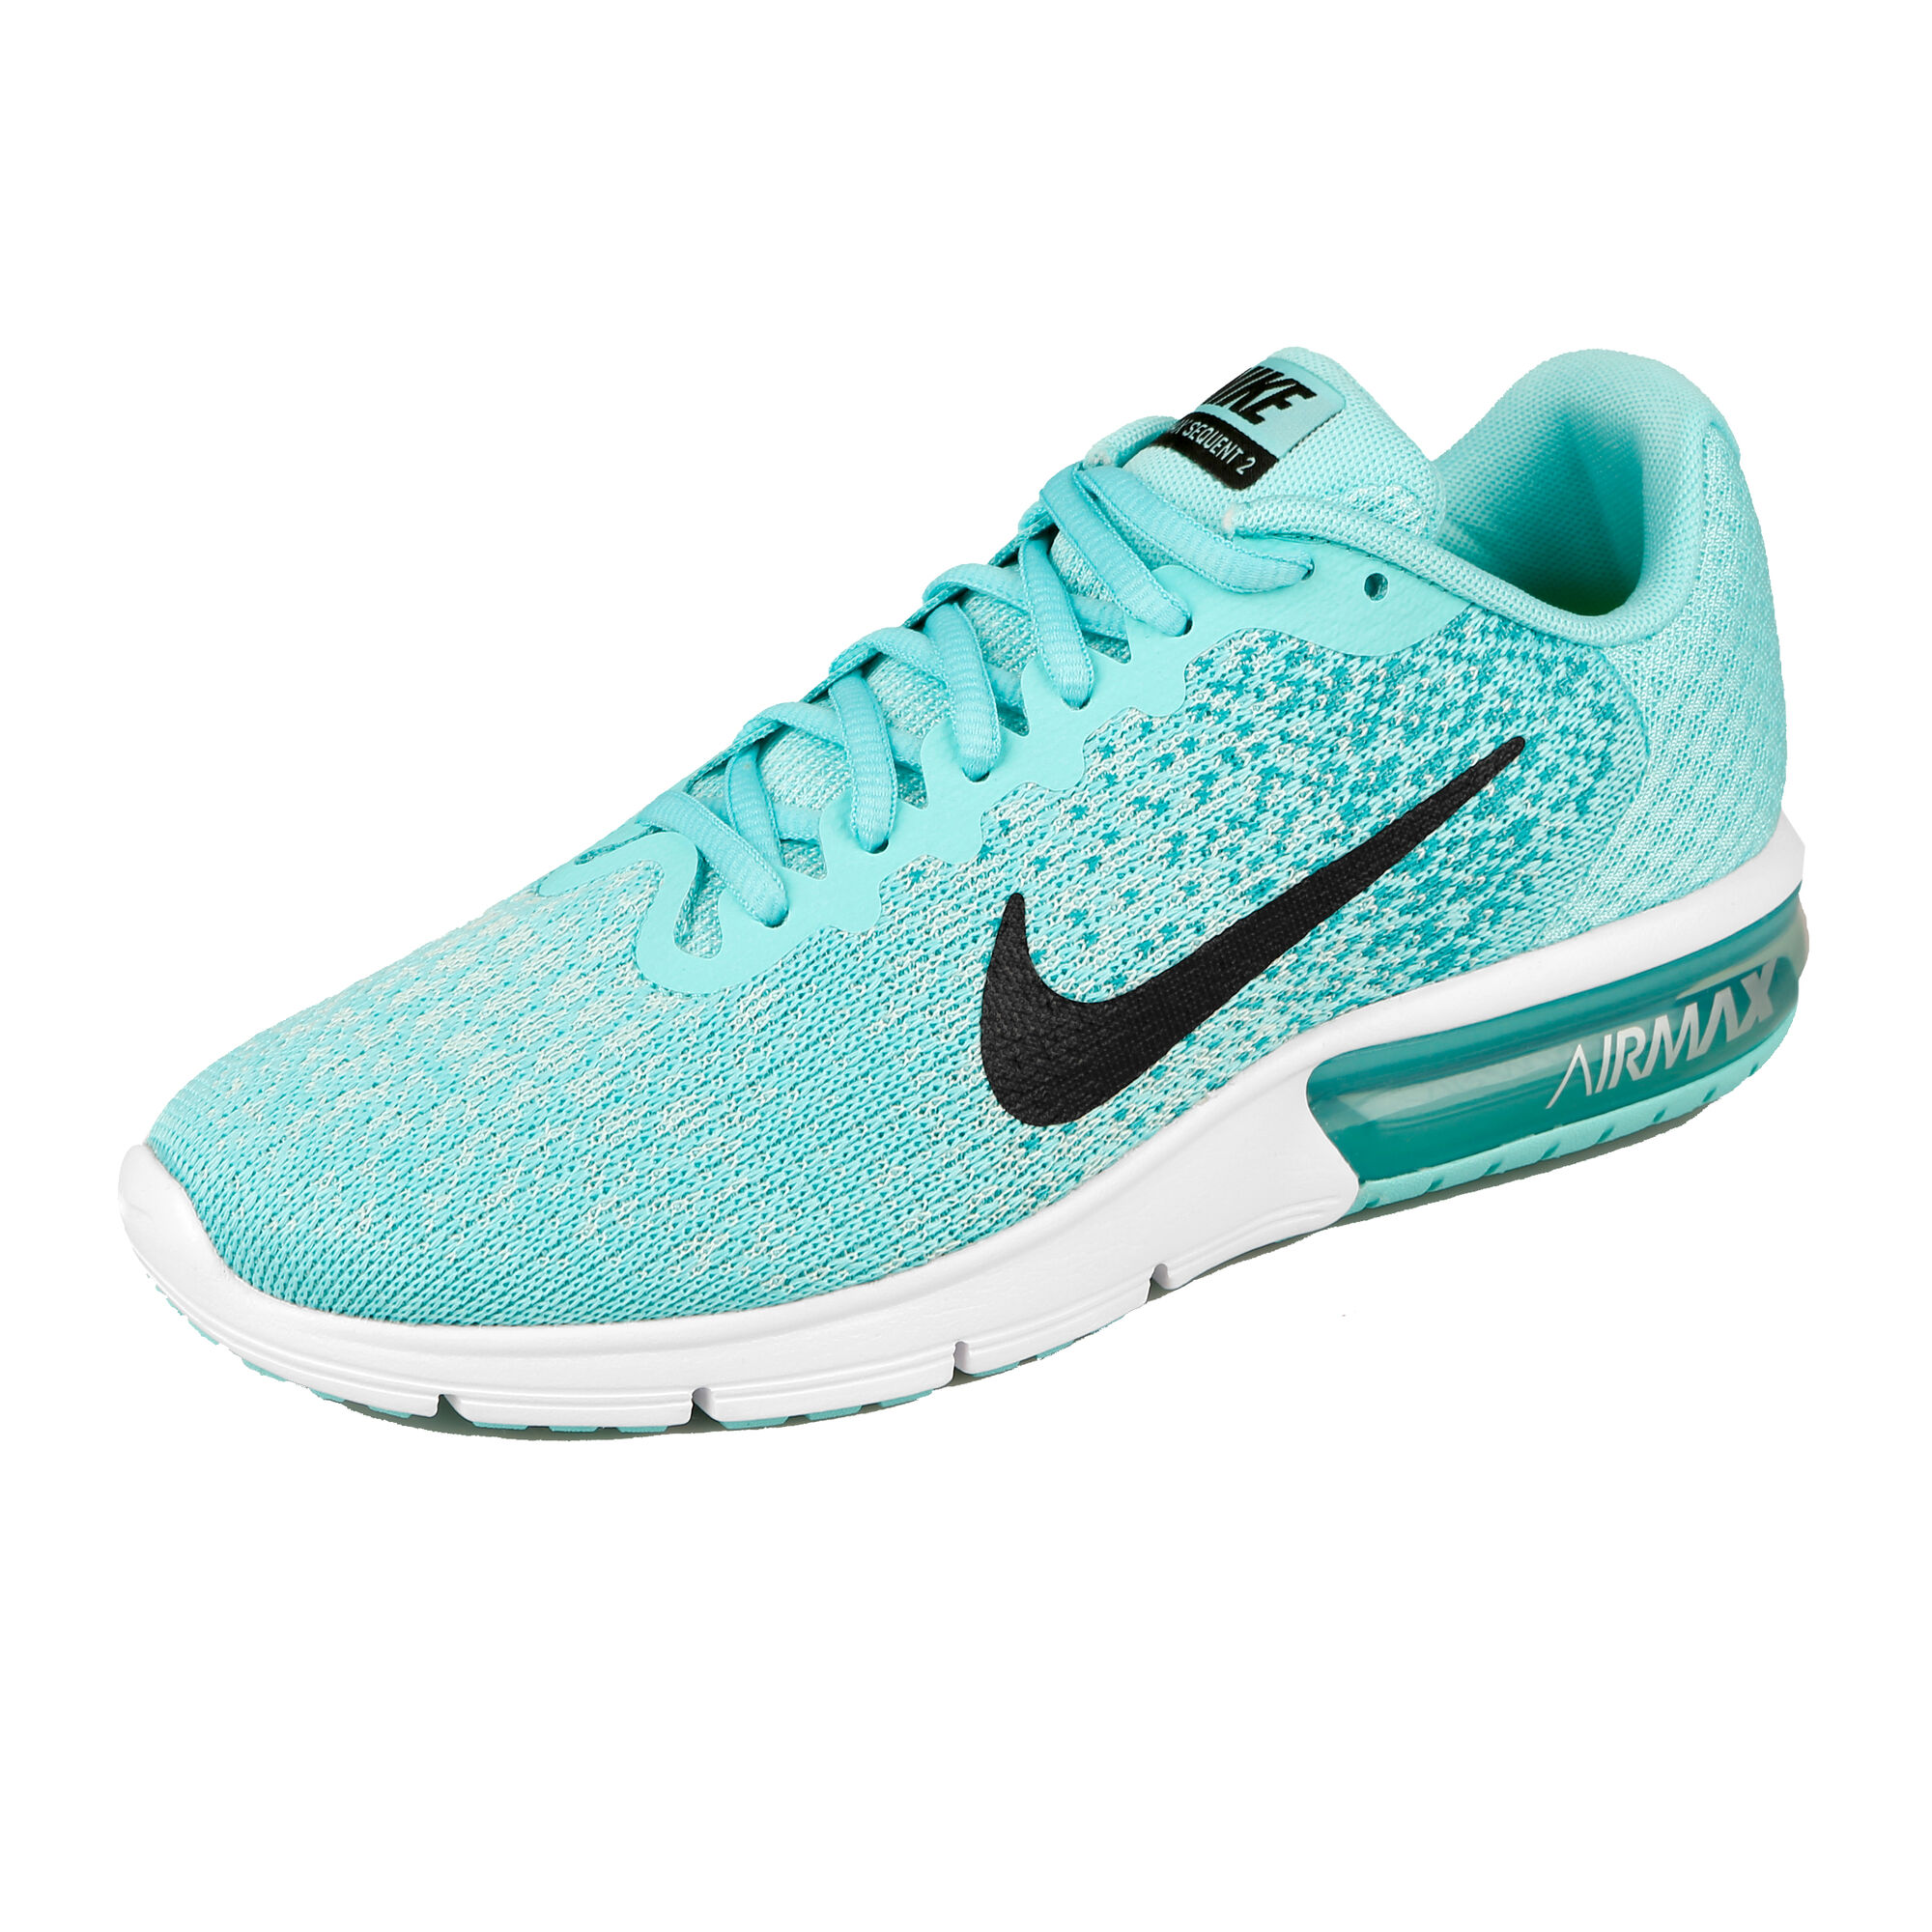 3bf5aeb3e174 buy Nike Air Max Sequent 2 Neutral Running Shoe Women - Light Blue ...